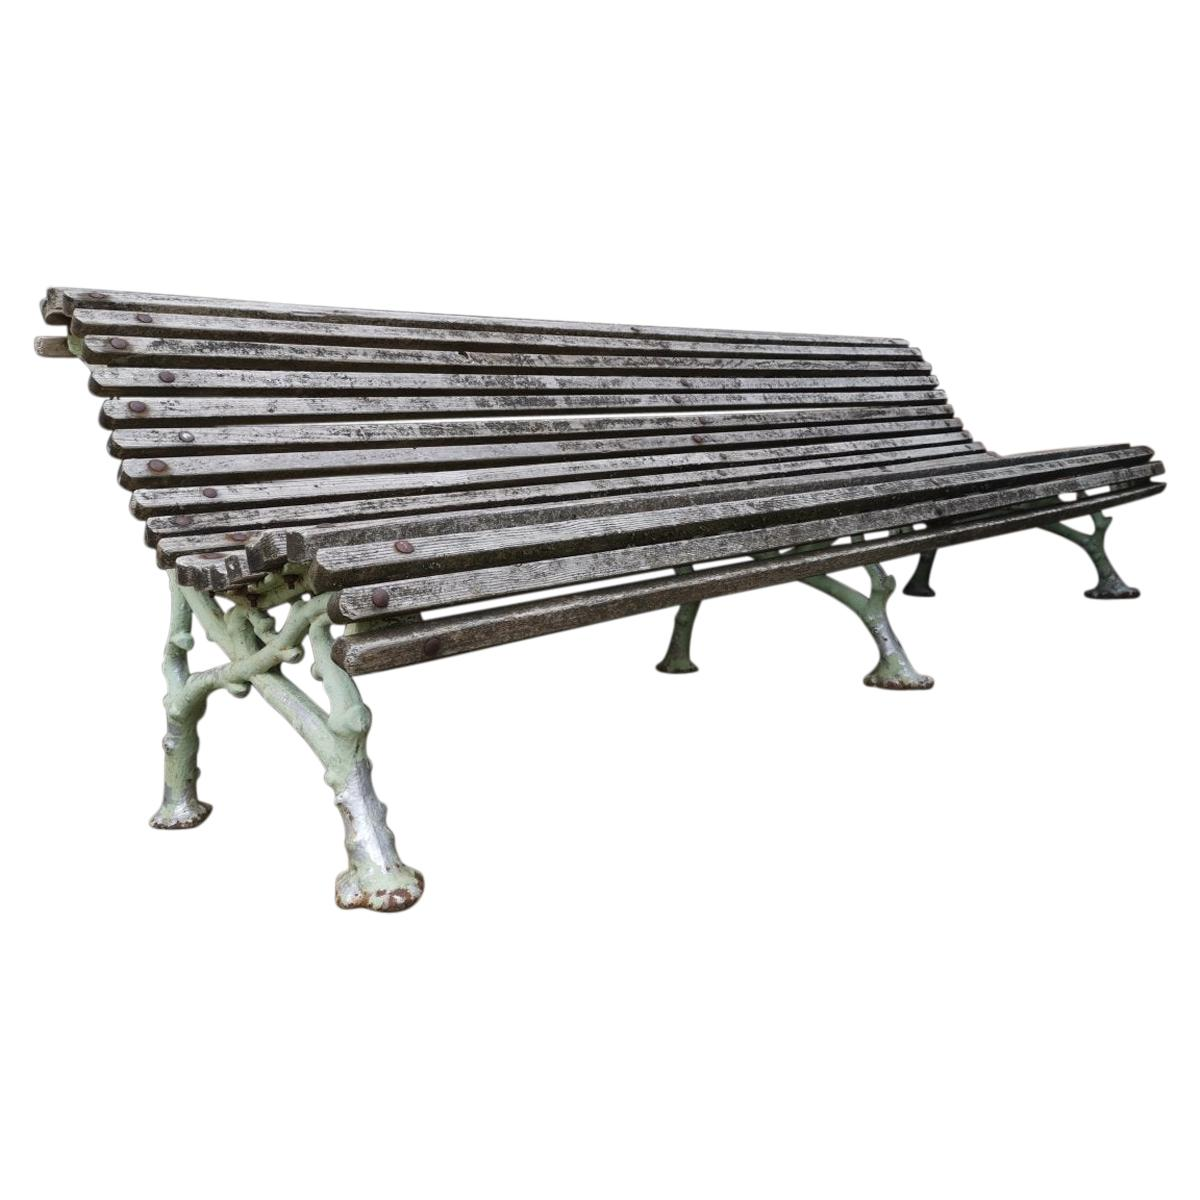 Coalbrookdale Cast Iron Garden Bench in the Style of Organic Naturistic Branches